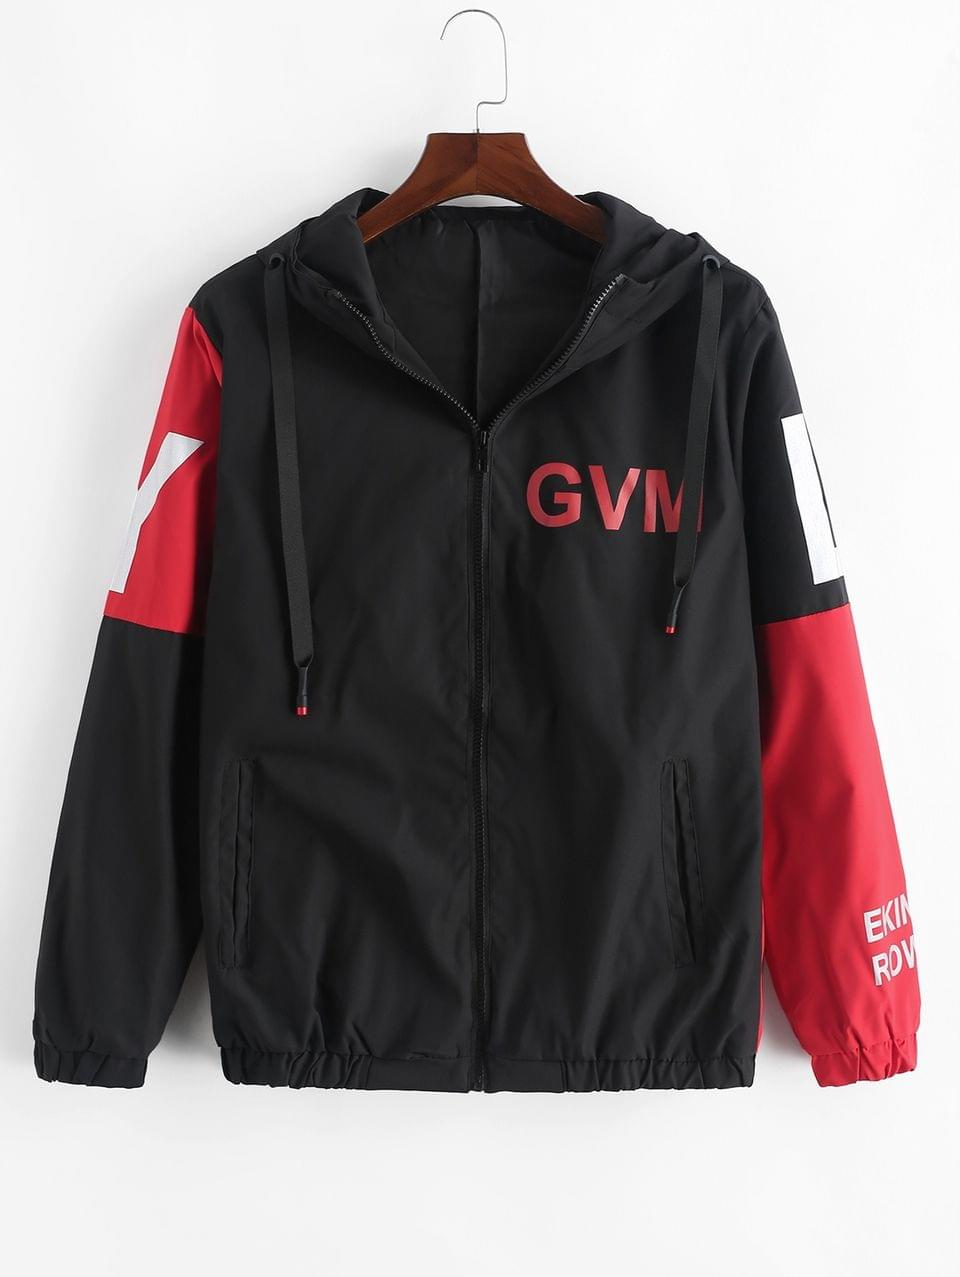 Men's Letter Graphic Colorblock Splicing Hooded Jacket - Red 4xl